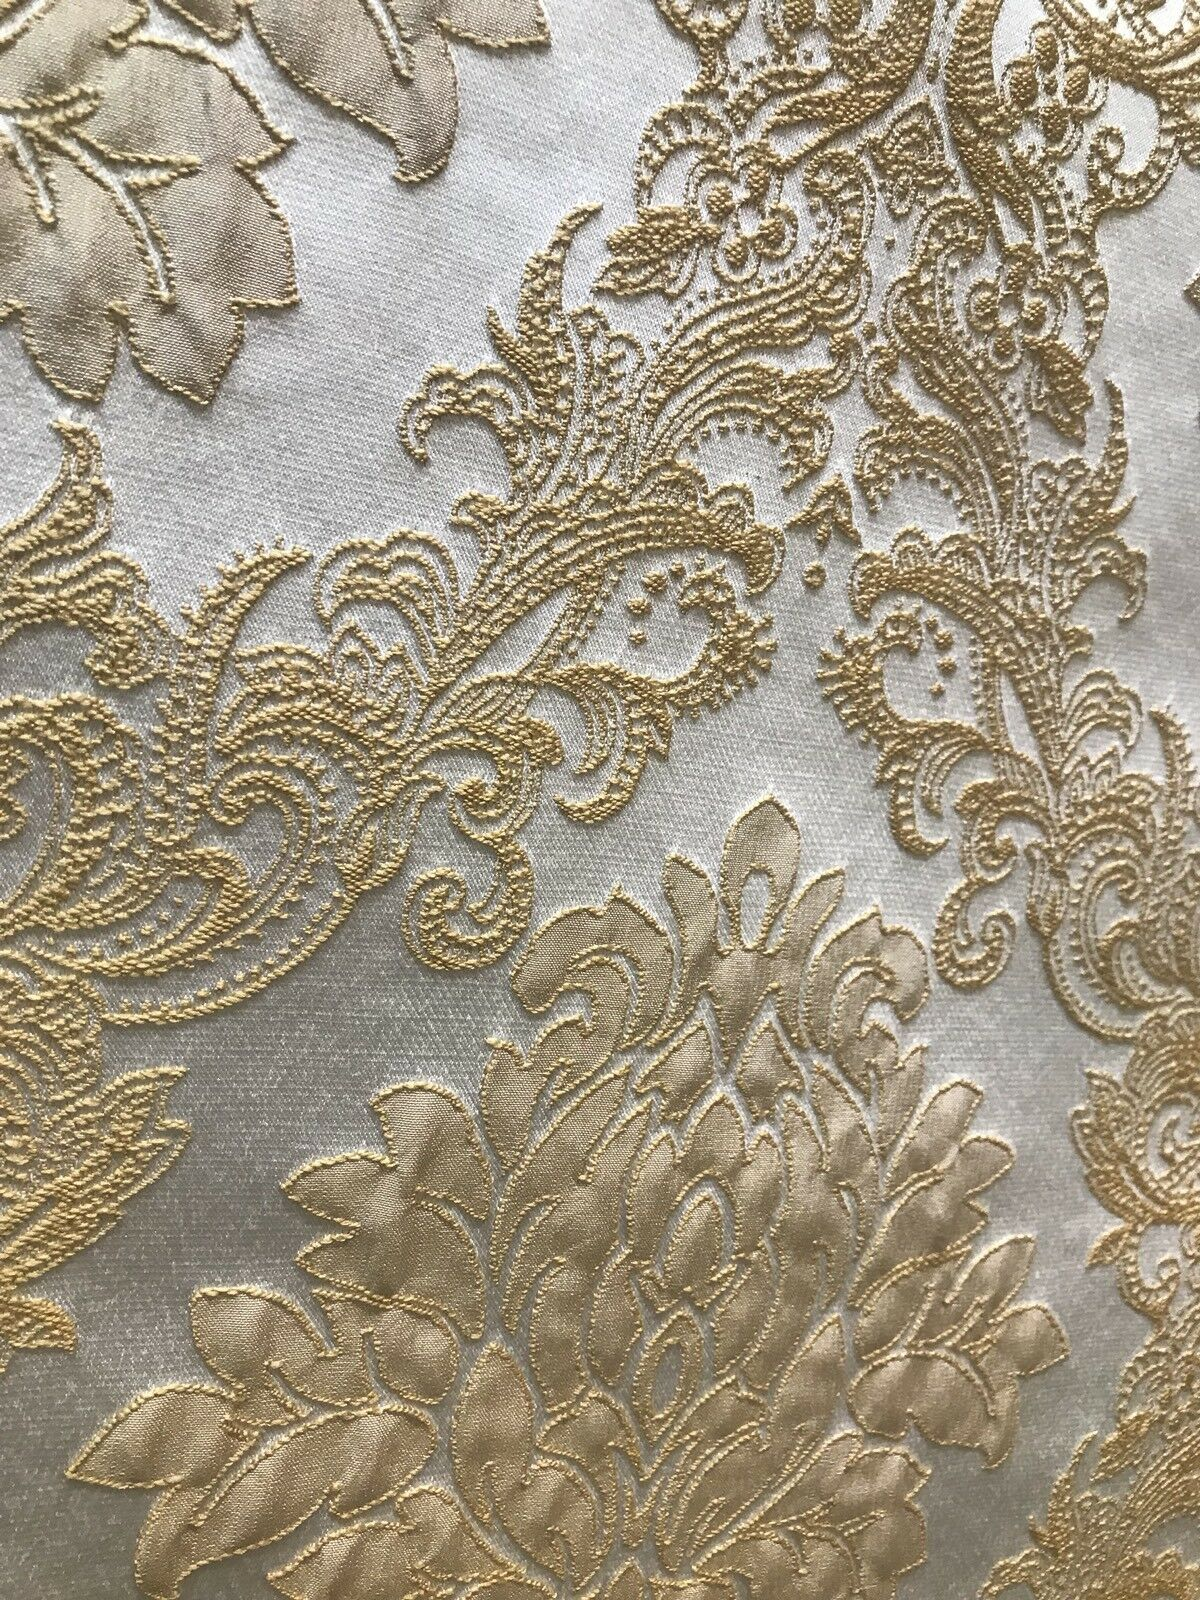 Princess Gemma Designer Brocade Satin Fabric- Antique Gold And White - Upholstery Damask